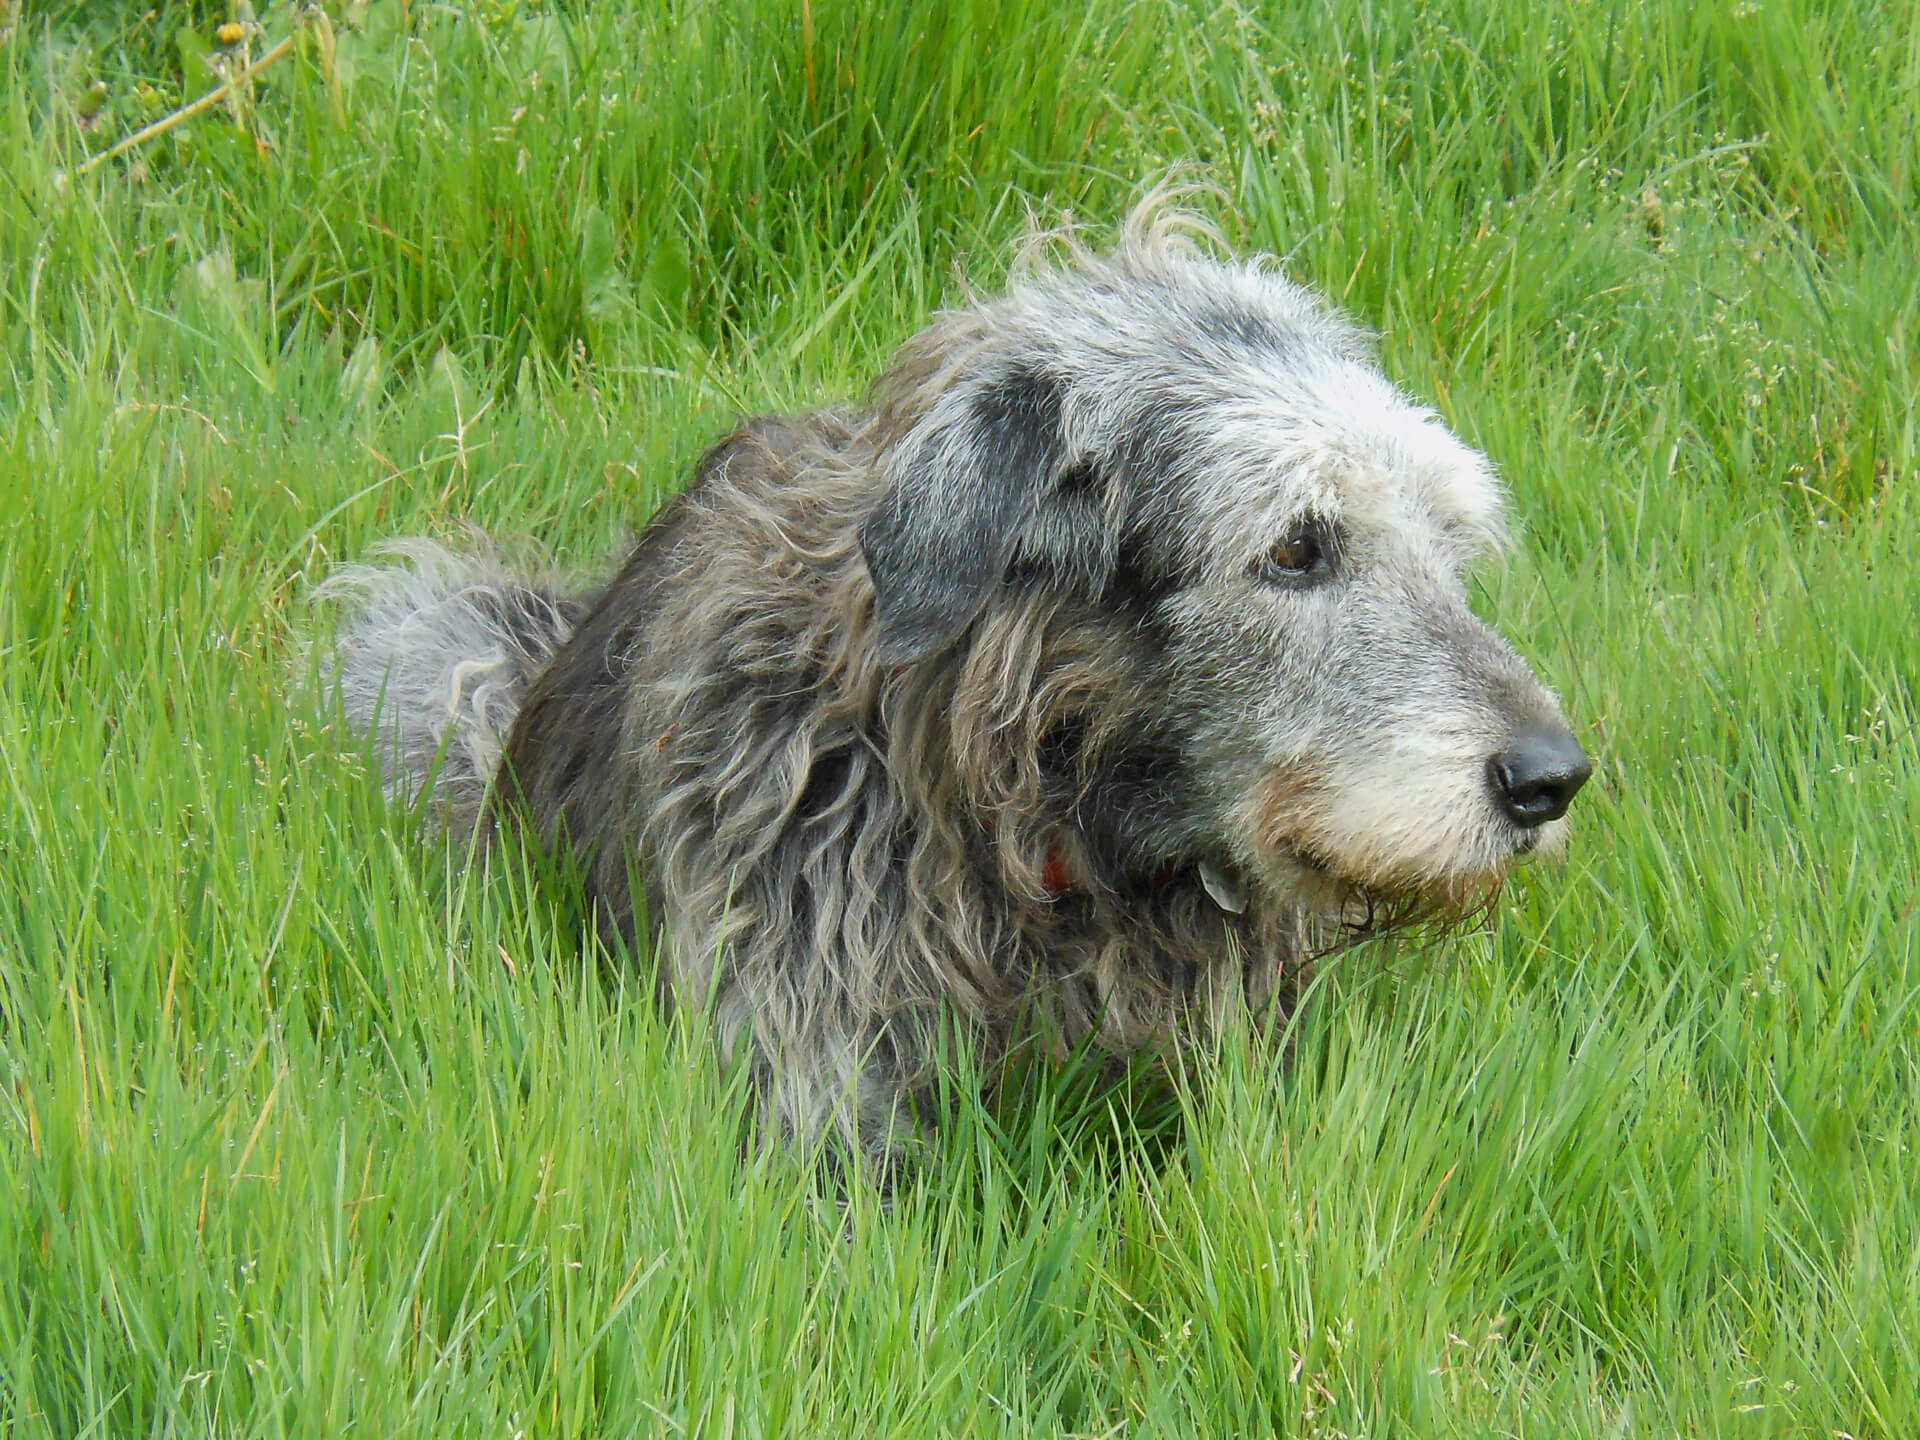 Mr Foobers, an old age Irish Wolfhound lays in long grass surveying his domain.